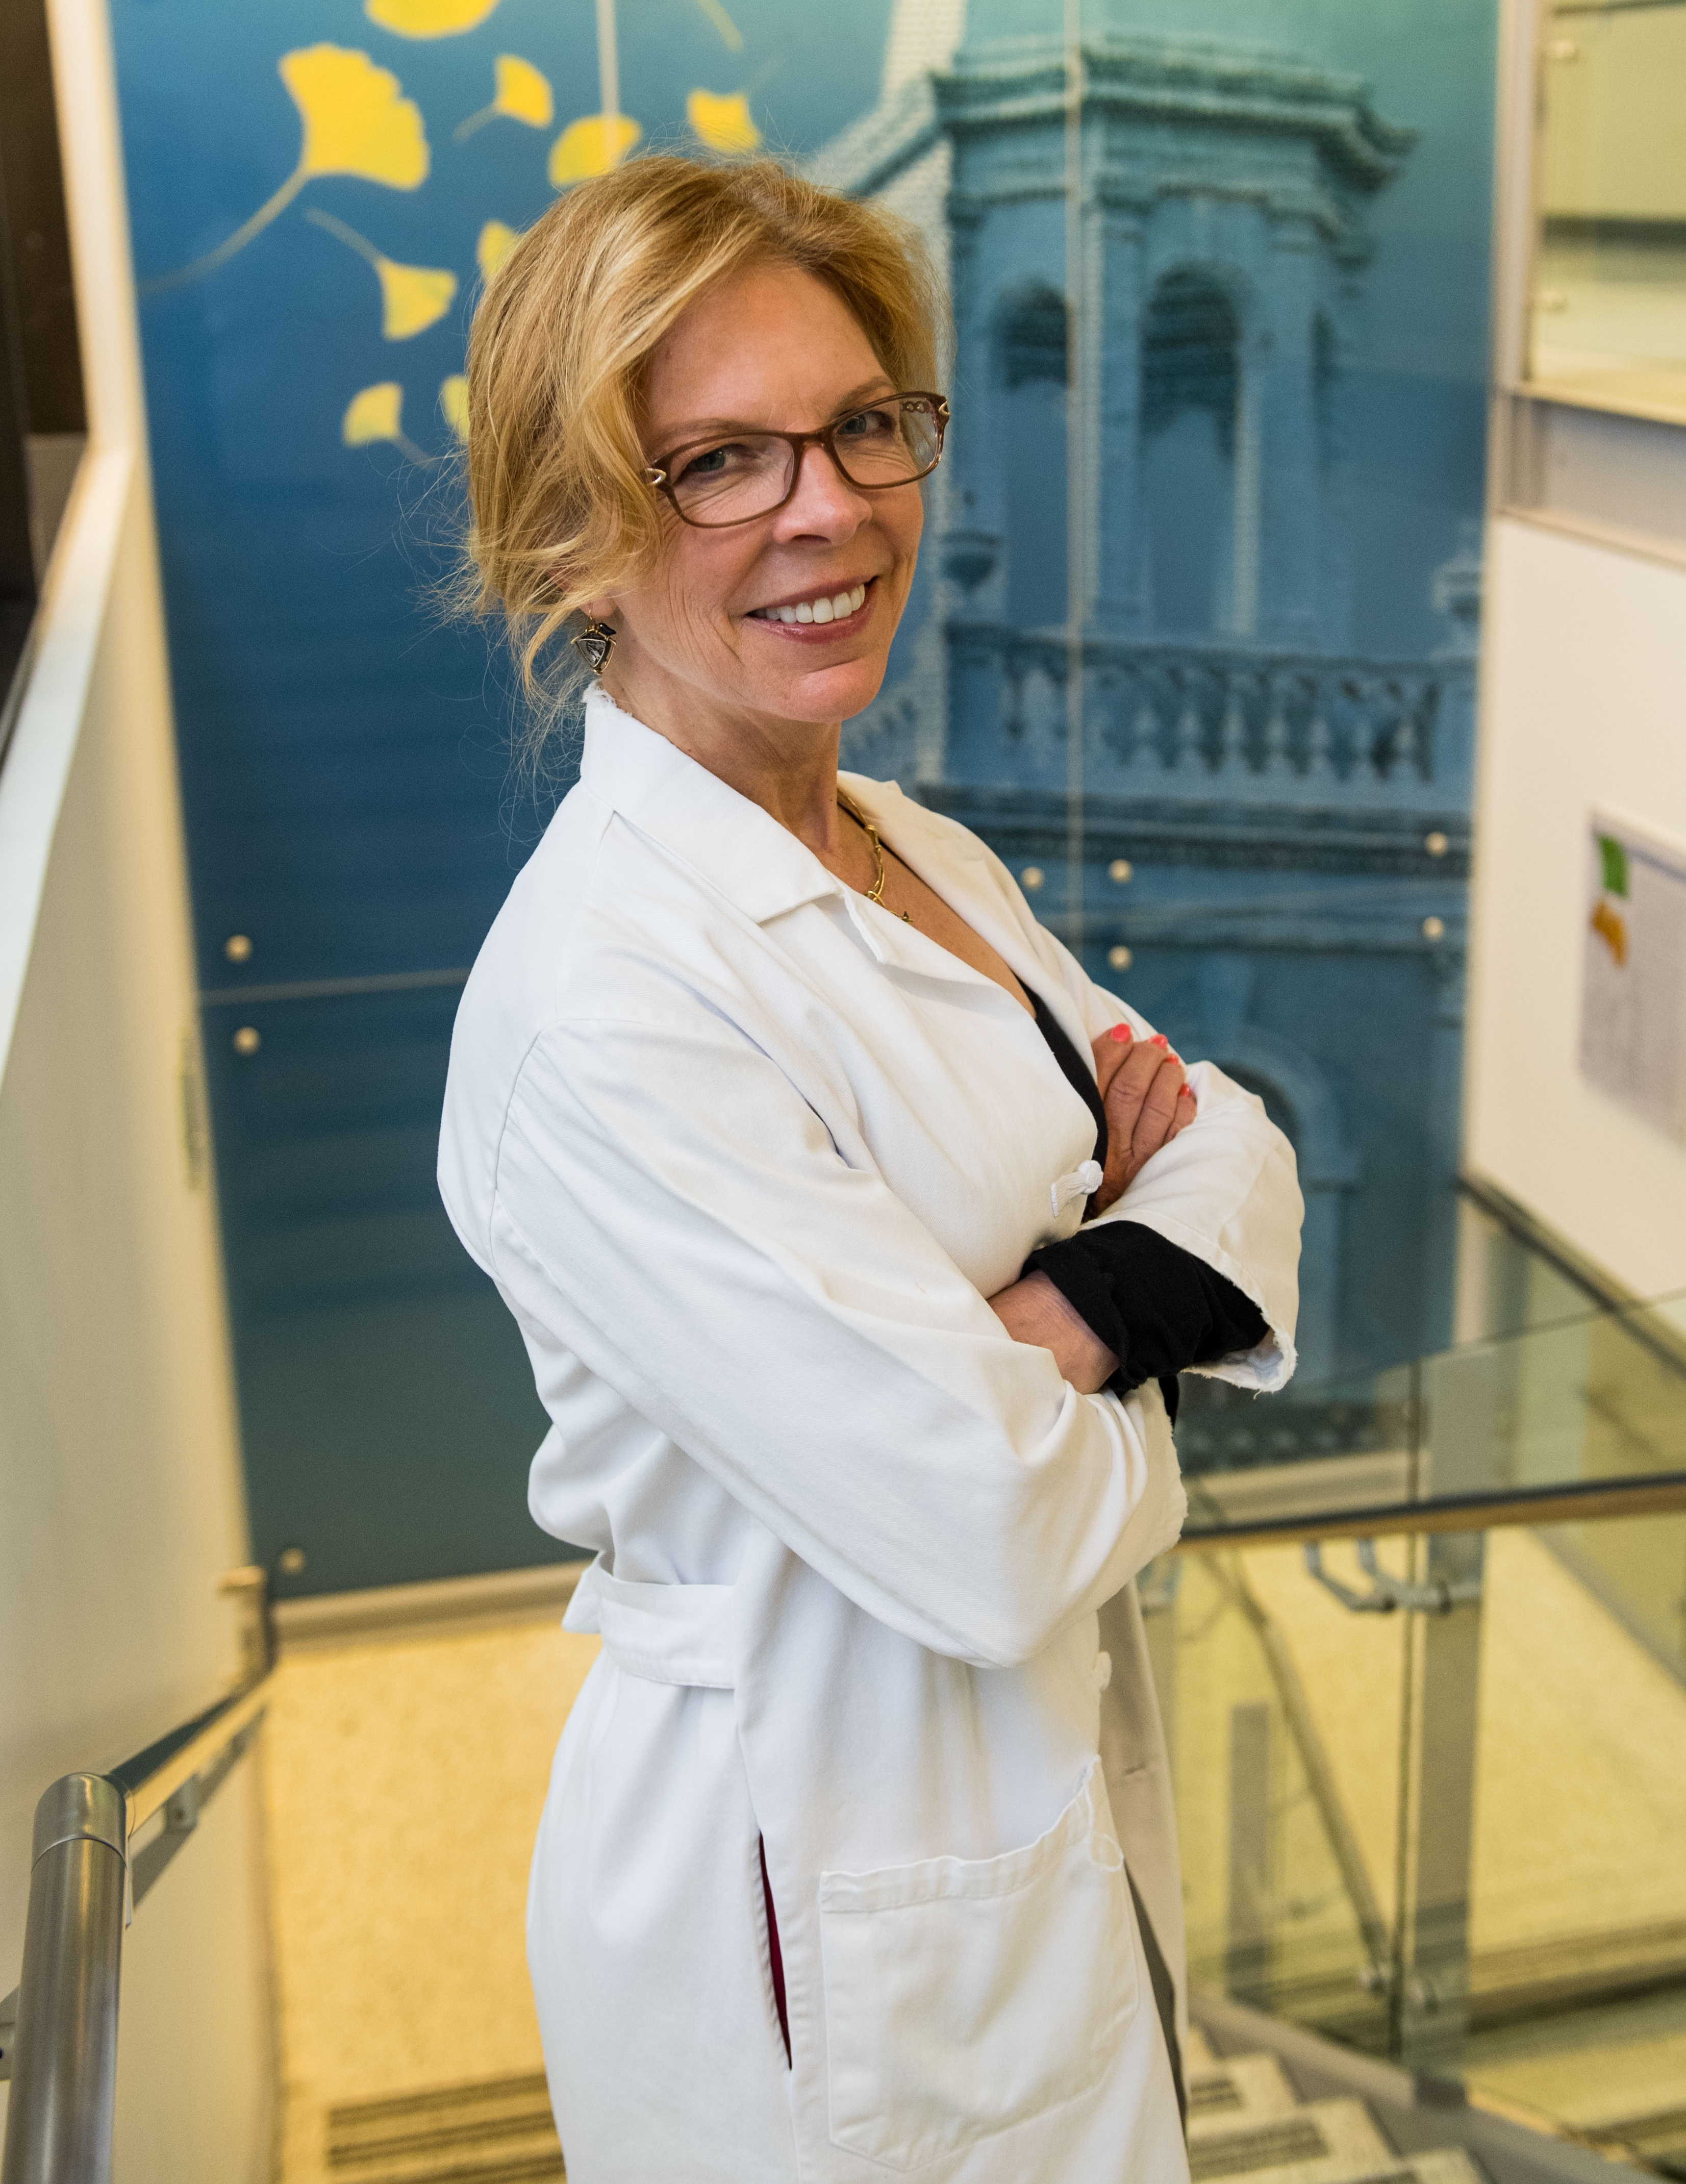 Photo of Kathryn Sandberg, PhD standing in a bright stairway wearing a white lab coat